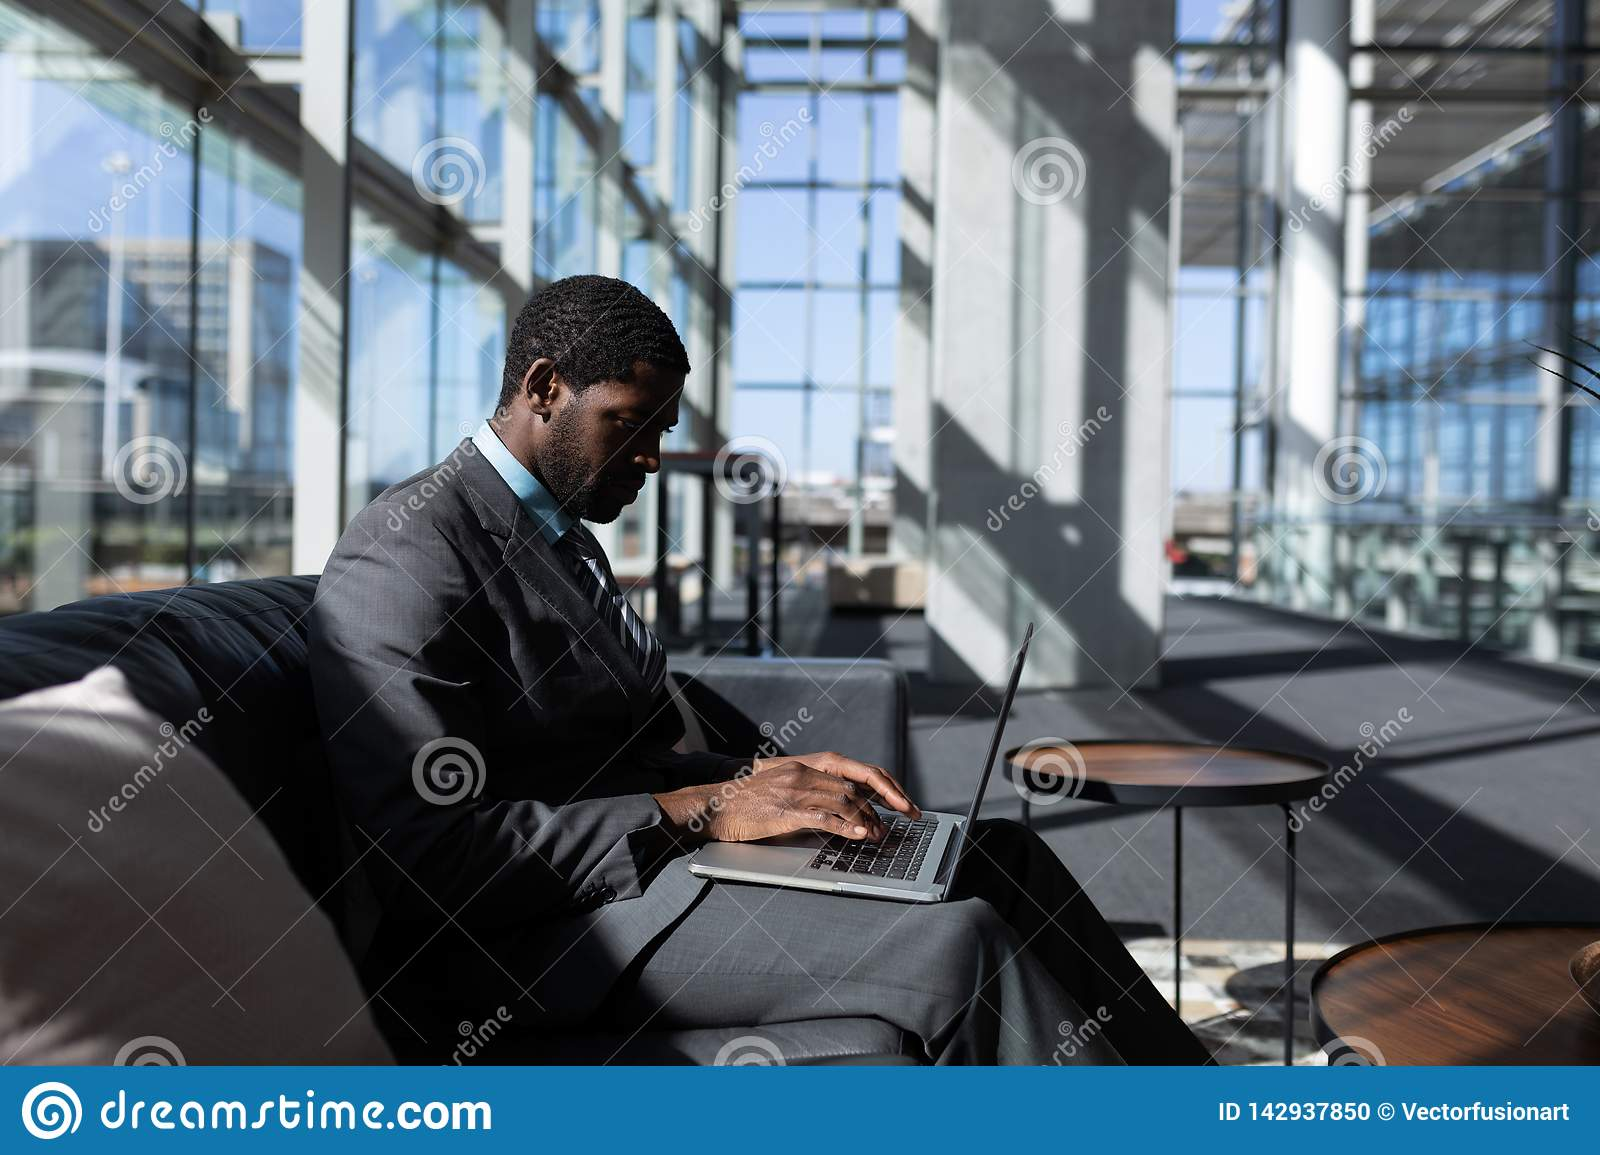 African-American businessman sitting on the sofa and using laptop in modern office